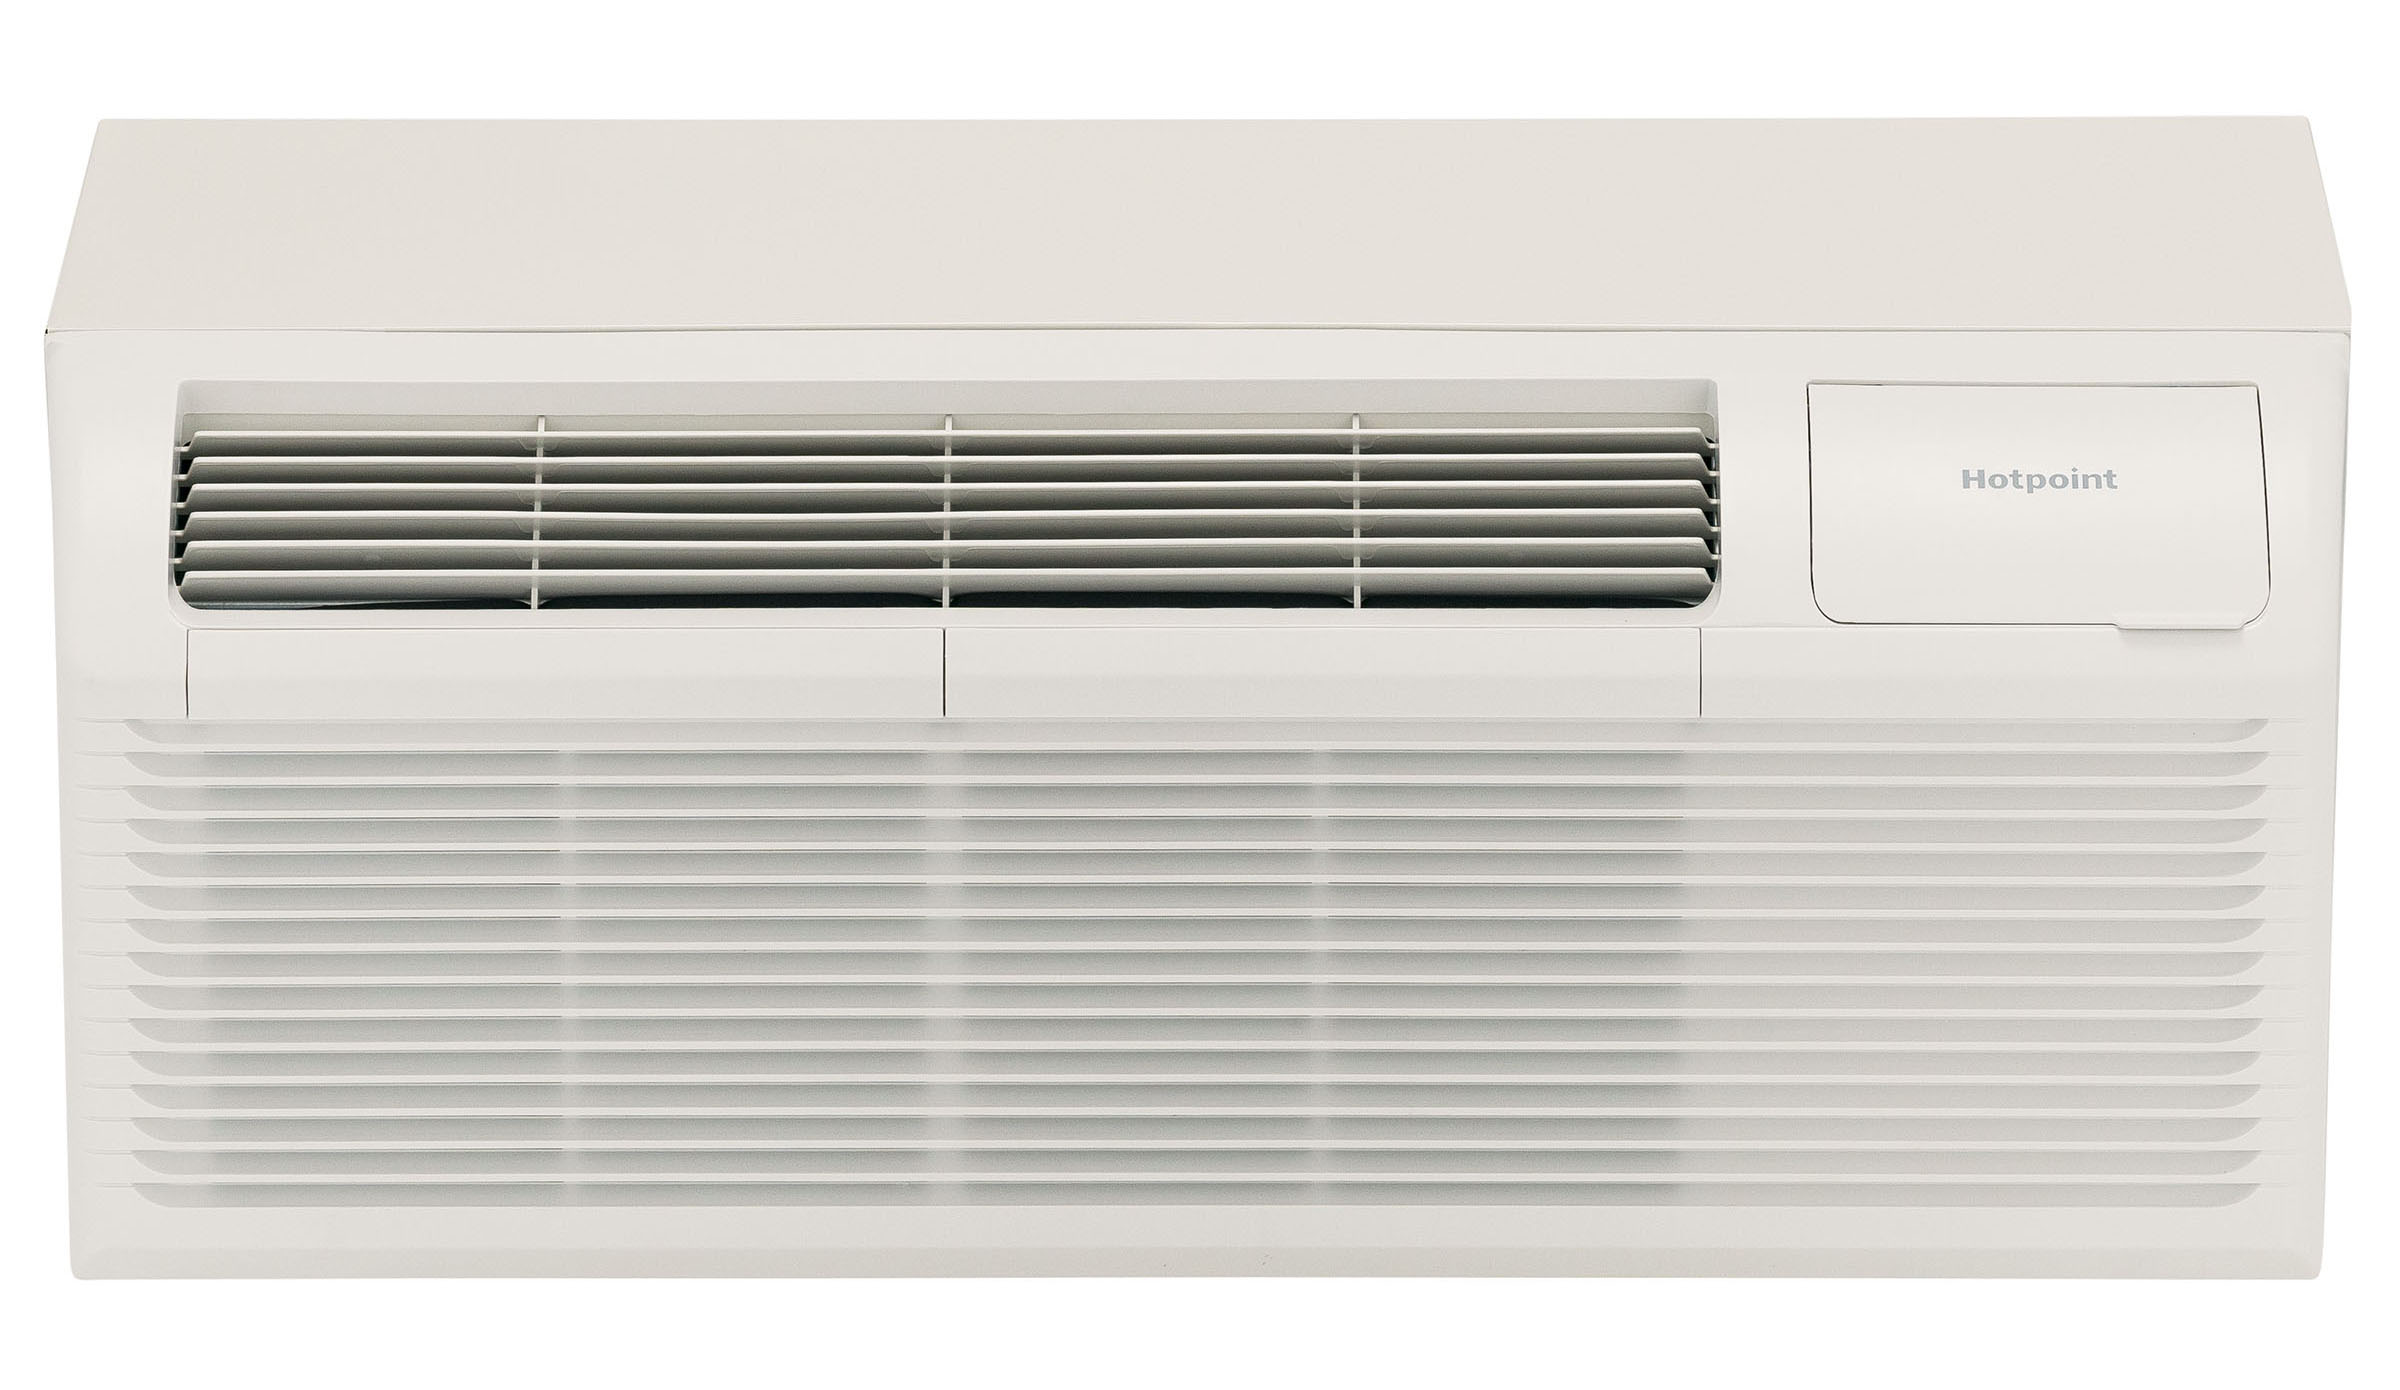 Hotpoint AH11E15D5B 15000 BTU PTAC Air Conditioner with Electric Heat - 30 Amp - 208/230 Volt